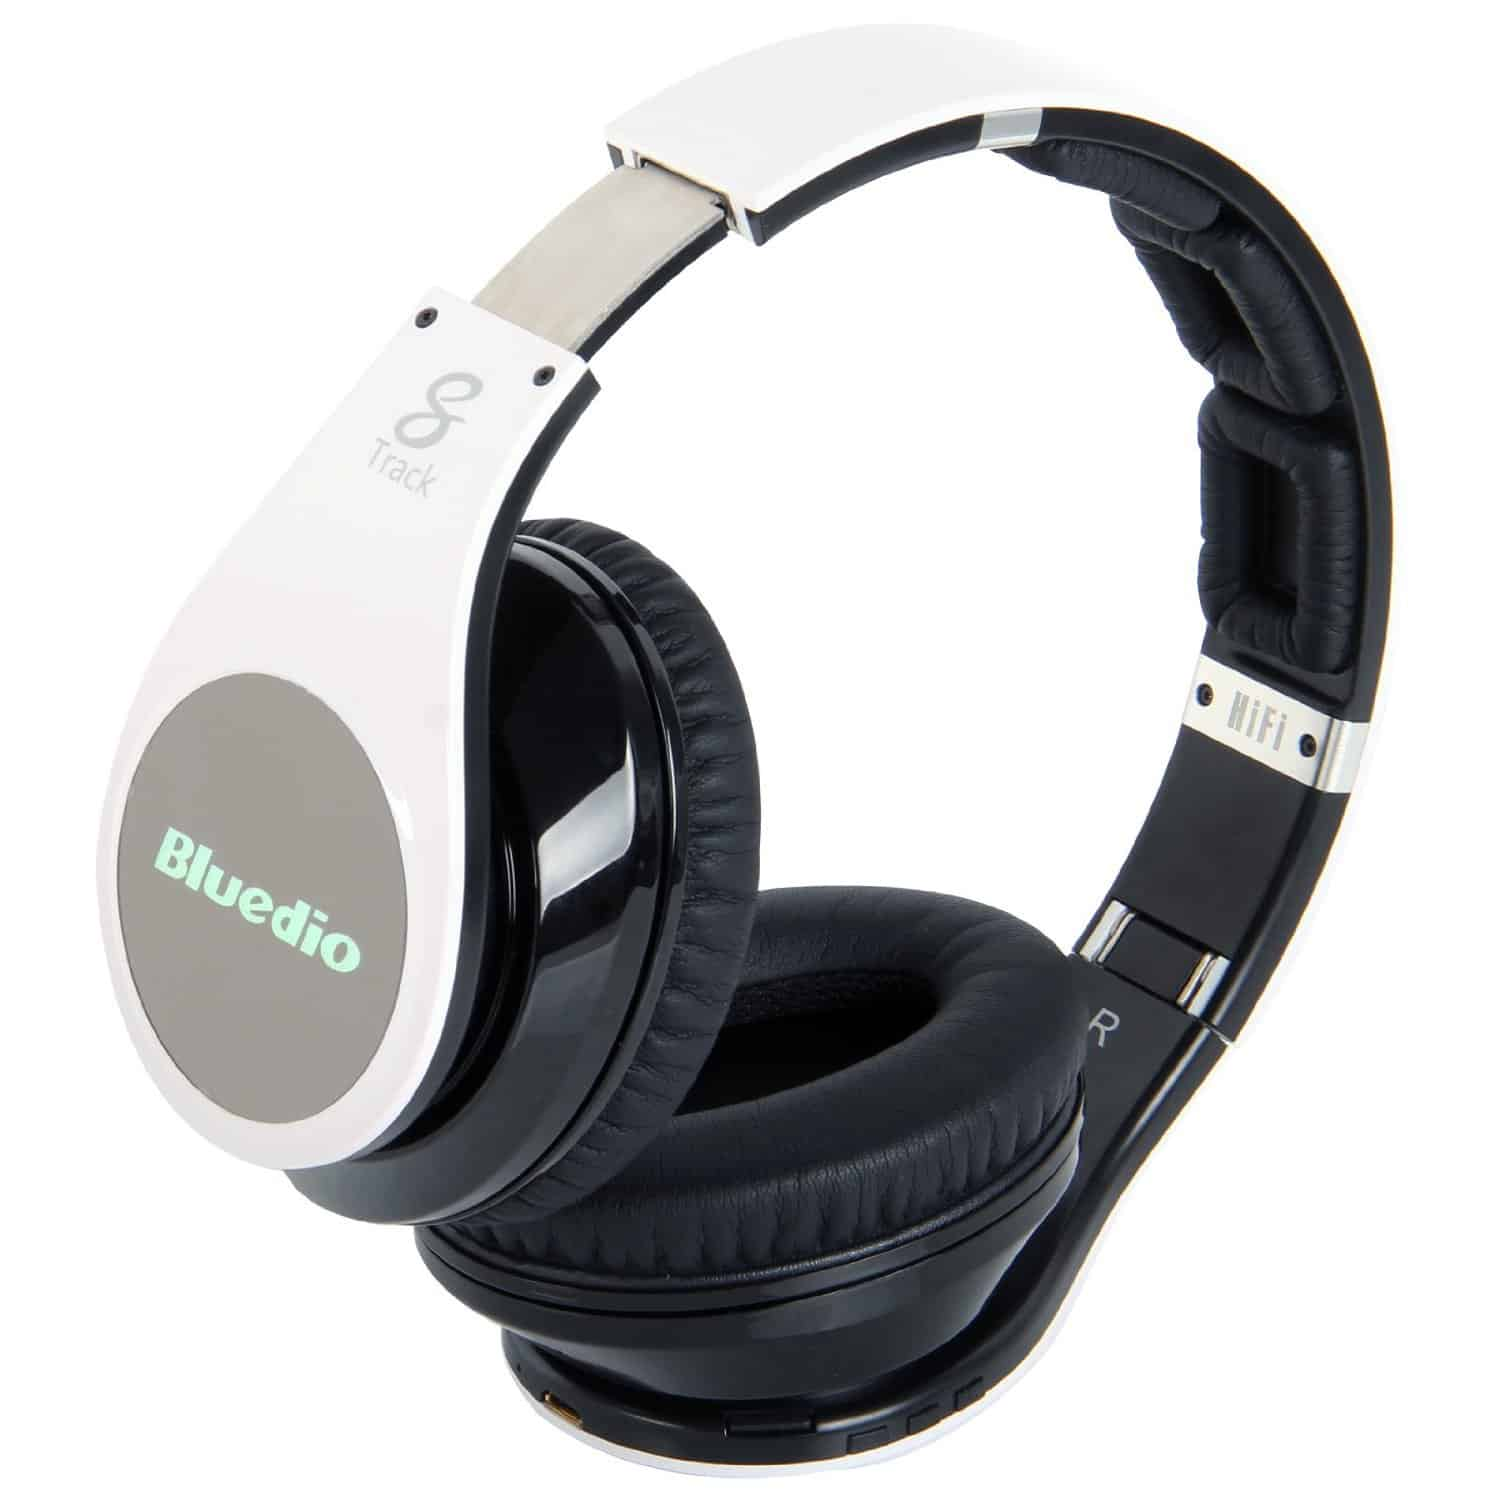 Bluedio R+ Bluetooth Stereo Hi-fi Headphones Review